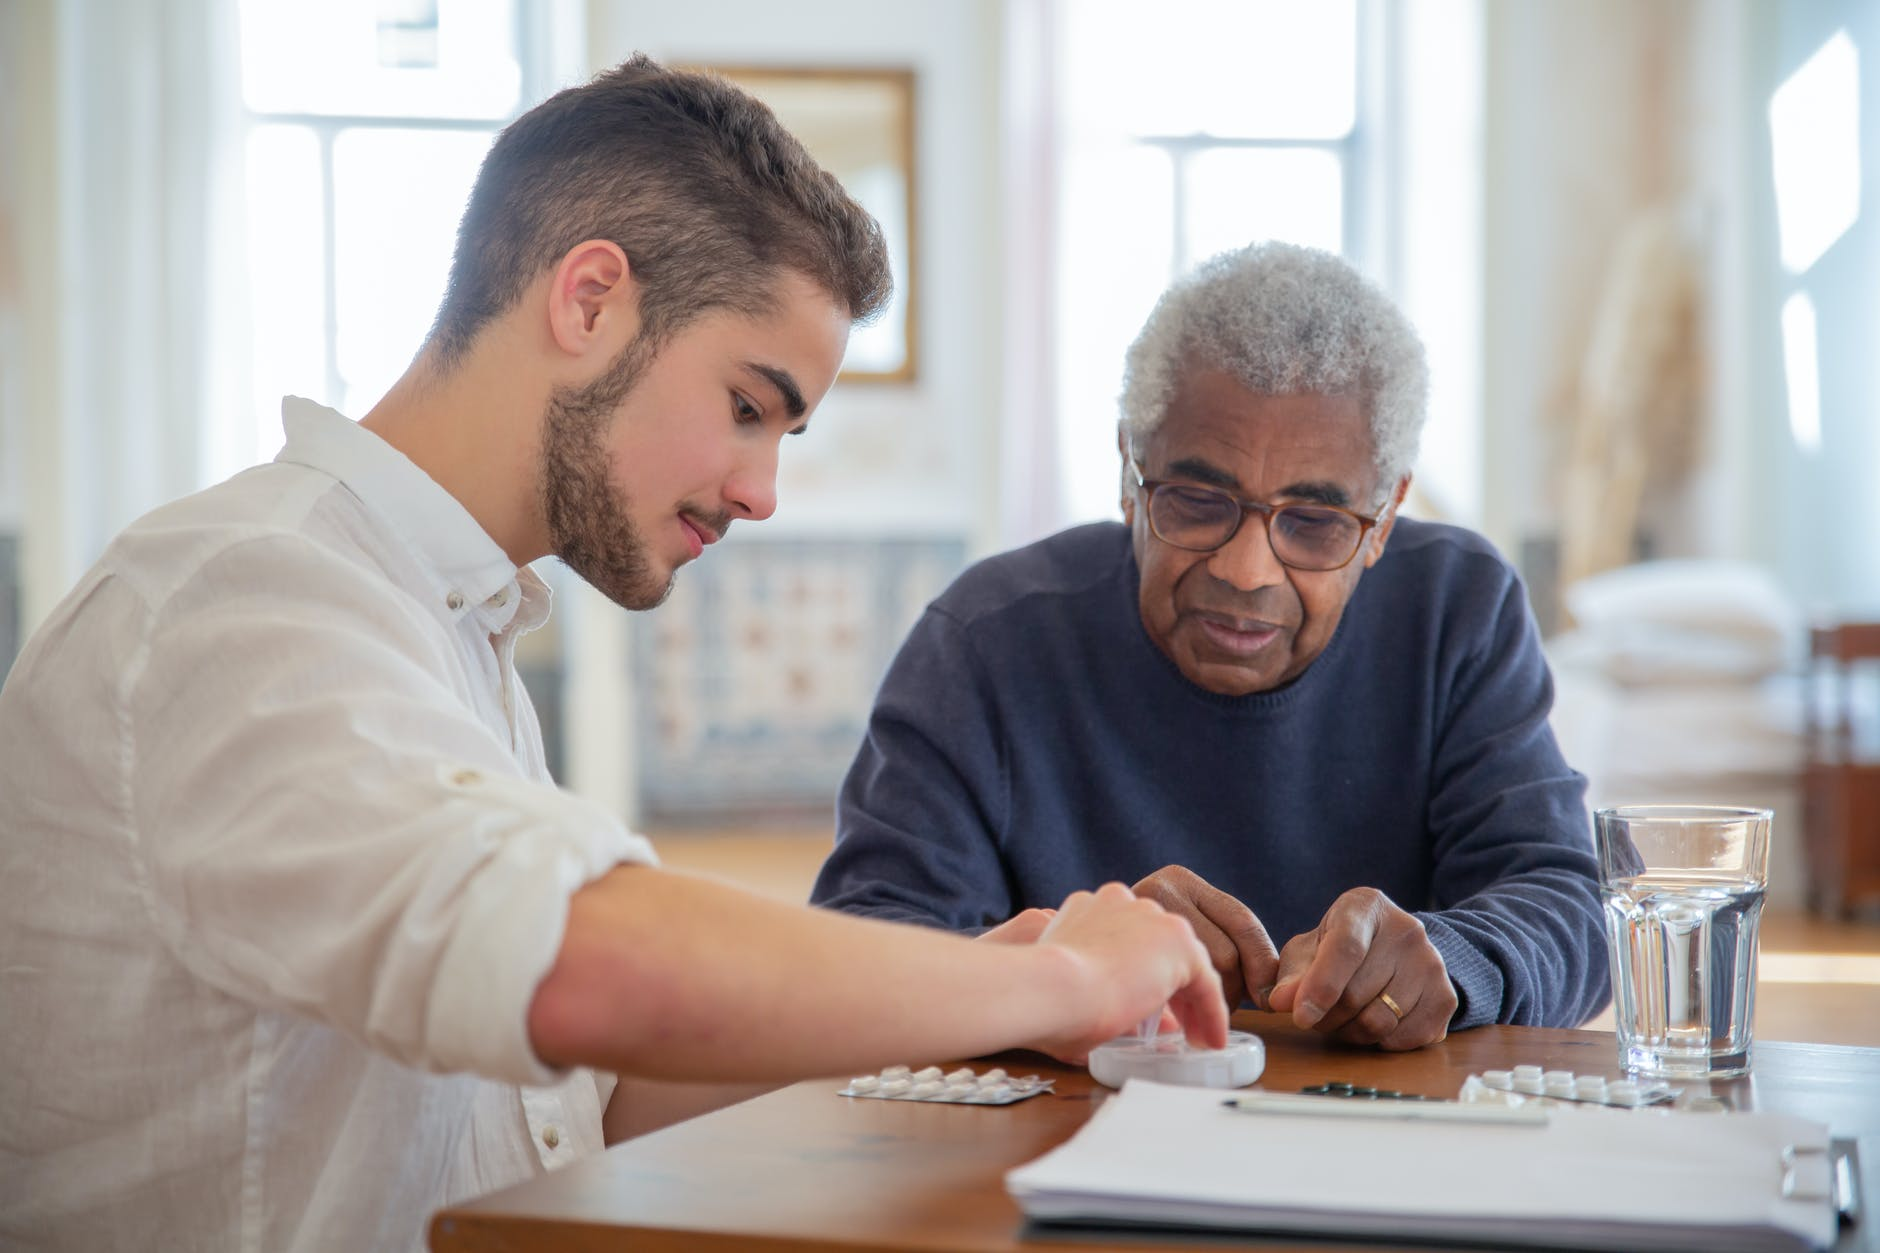 As a teenager, I volunteered at a nursing home to assuage my guilt. | Source: Pexels